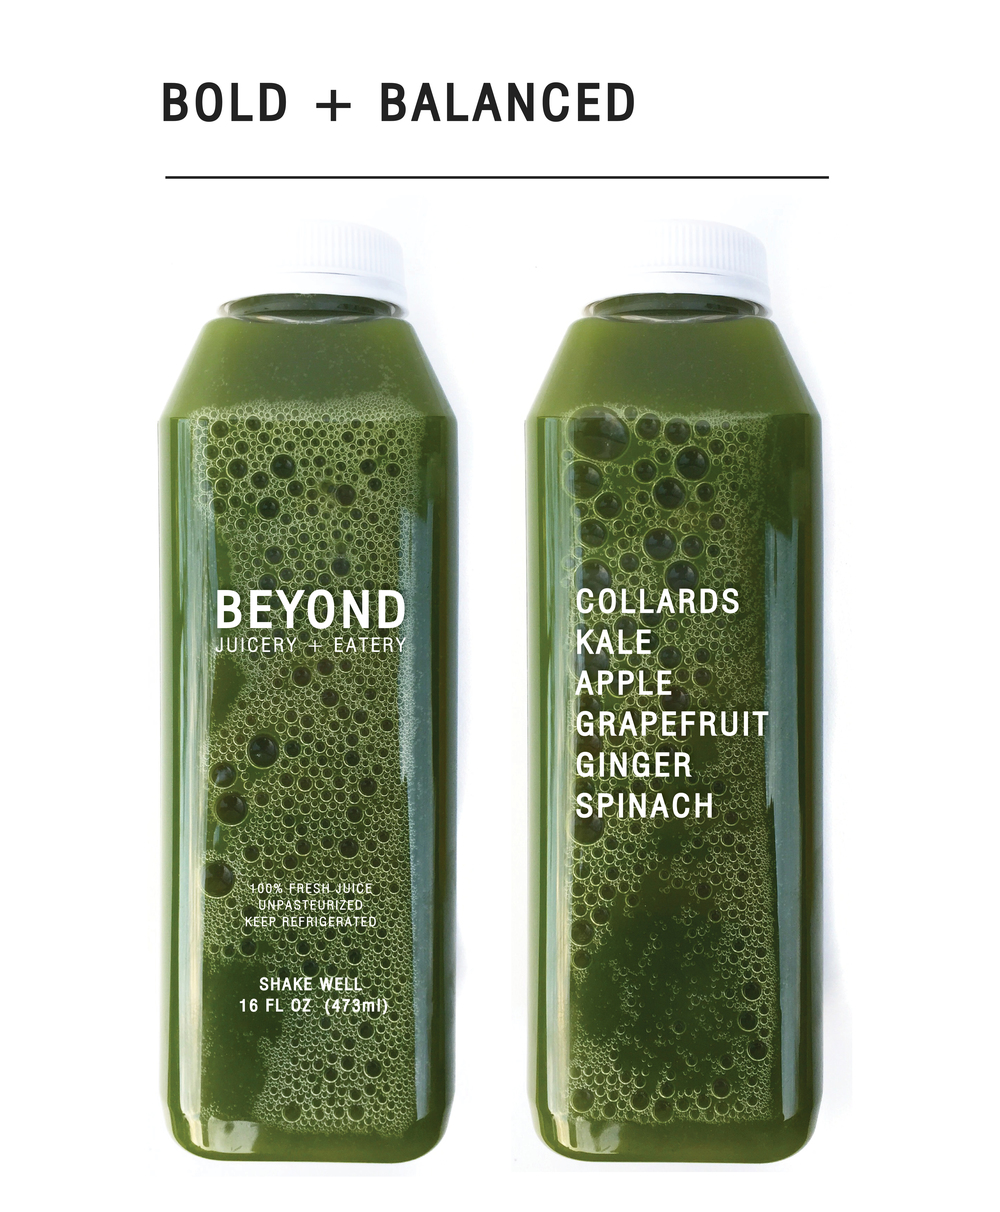 Drink to balance pH /  No need to drop the balancing act with this powerhouse of alkaline fruits and greens that supports your body's ability to maintain its ideal pH balance.  High in soluble fiber to promote digestive health and cancer-fighting carotenoids, this juice will keep you in check.    $9.00 (16oz)